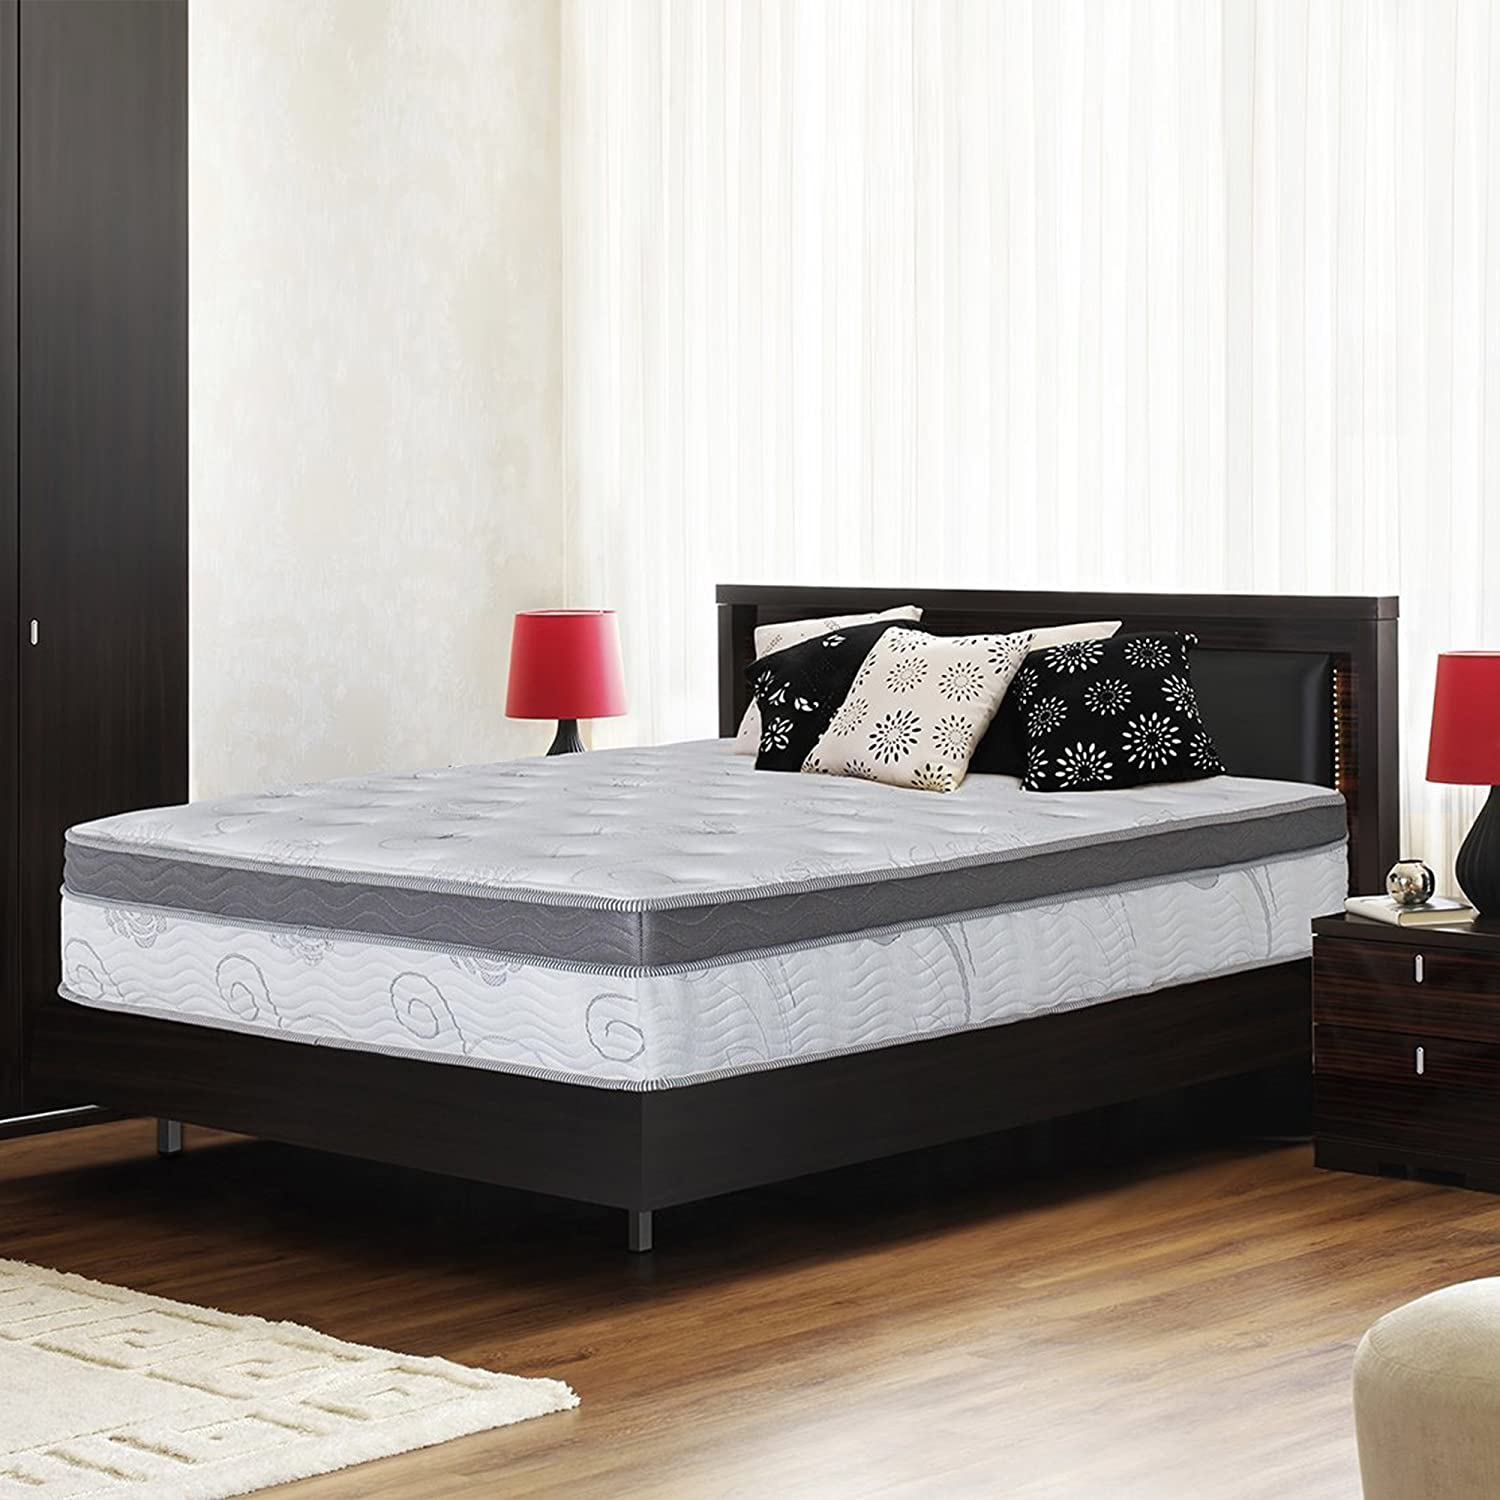 Olee Sleep 13 inch Galaxy Hybrid – Best All-Around Hybrid Mattress